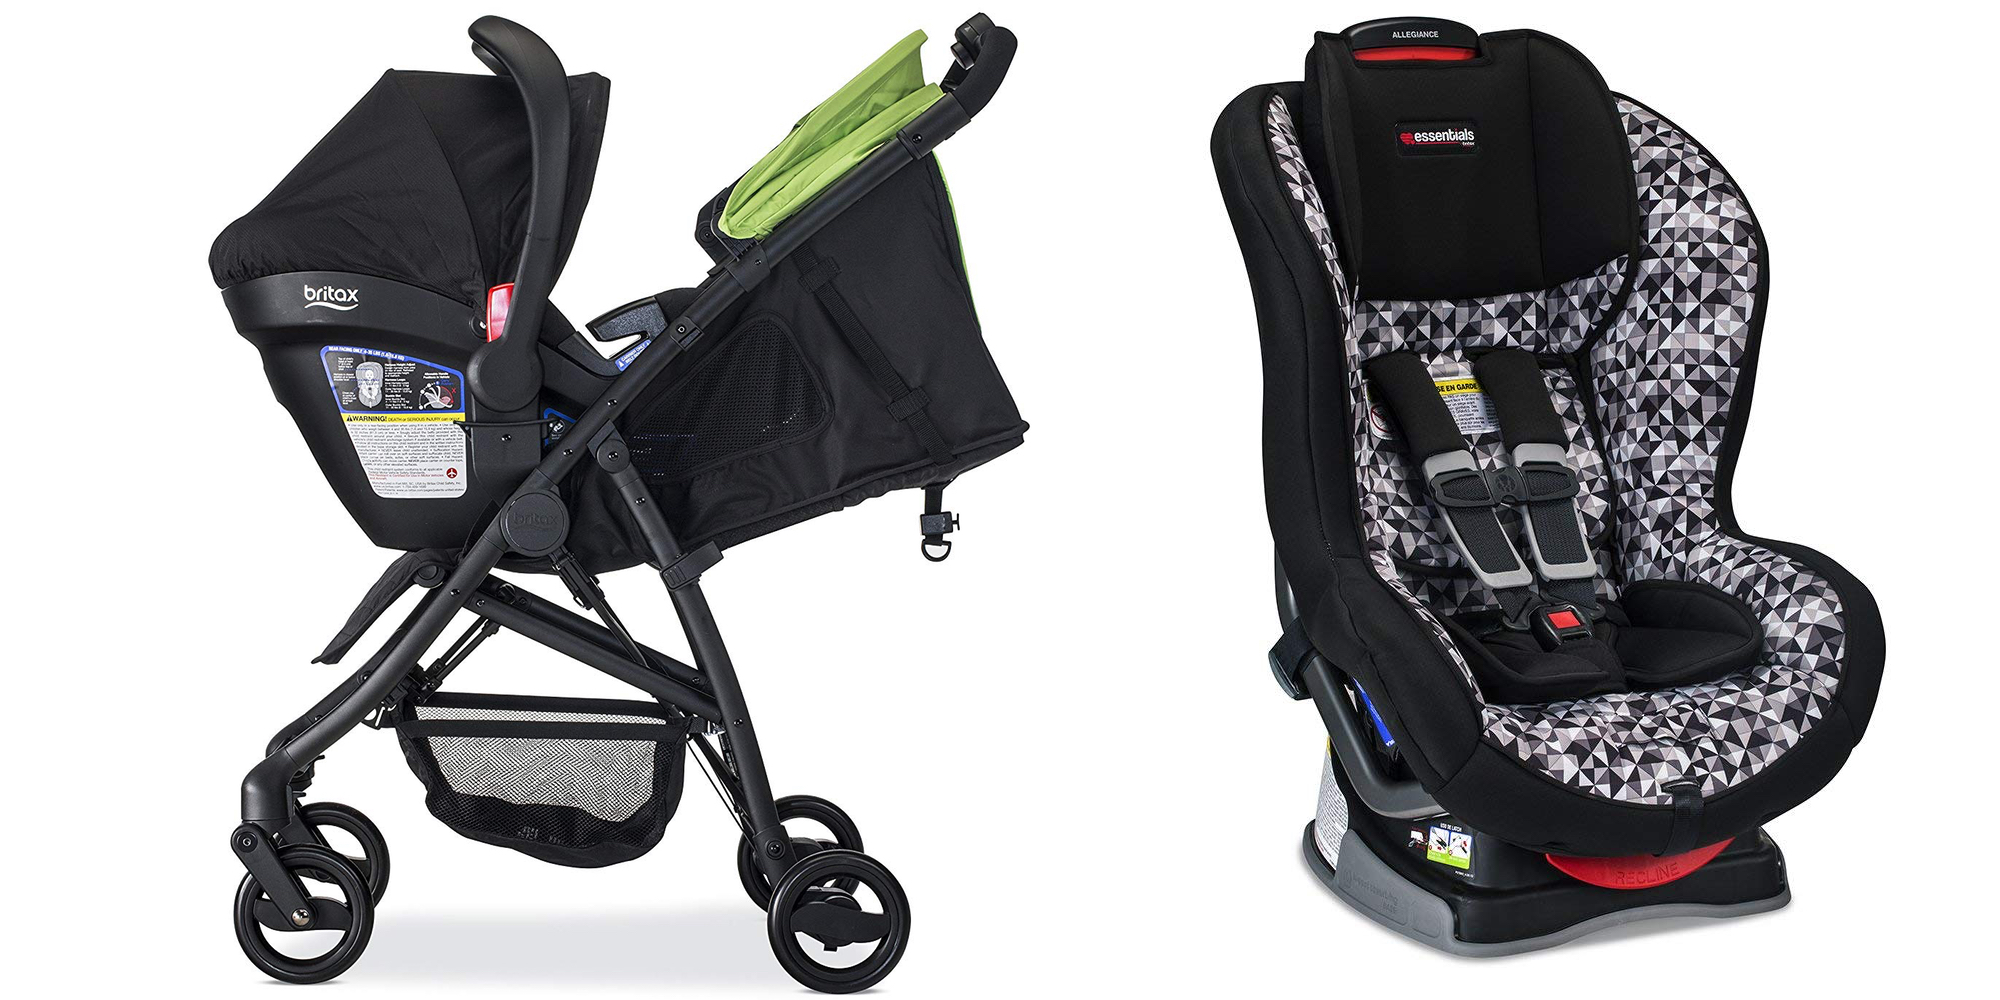 Britax Car Seat With Stroller Today Only Save Up To 25 On Select Britax Car Seats And